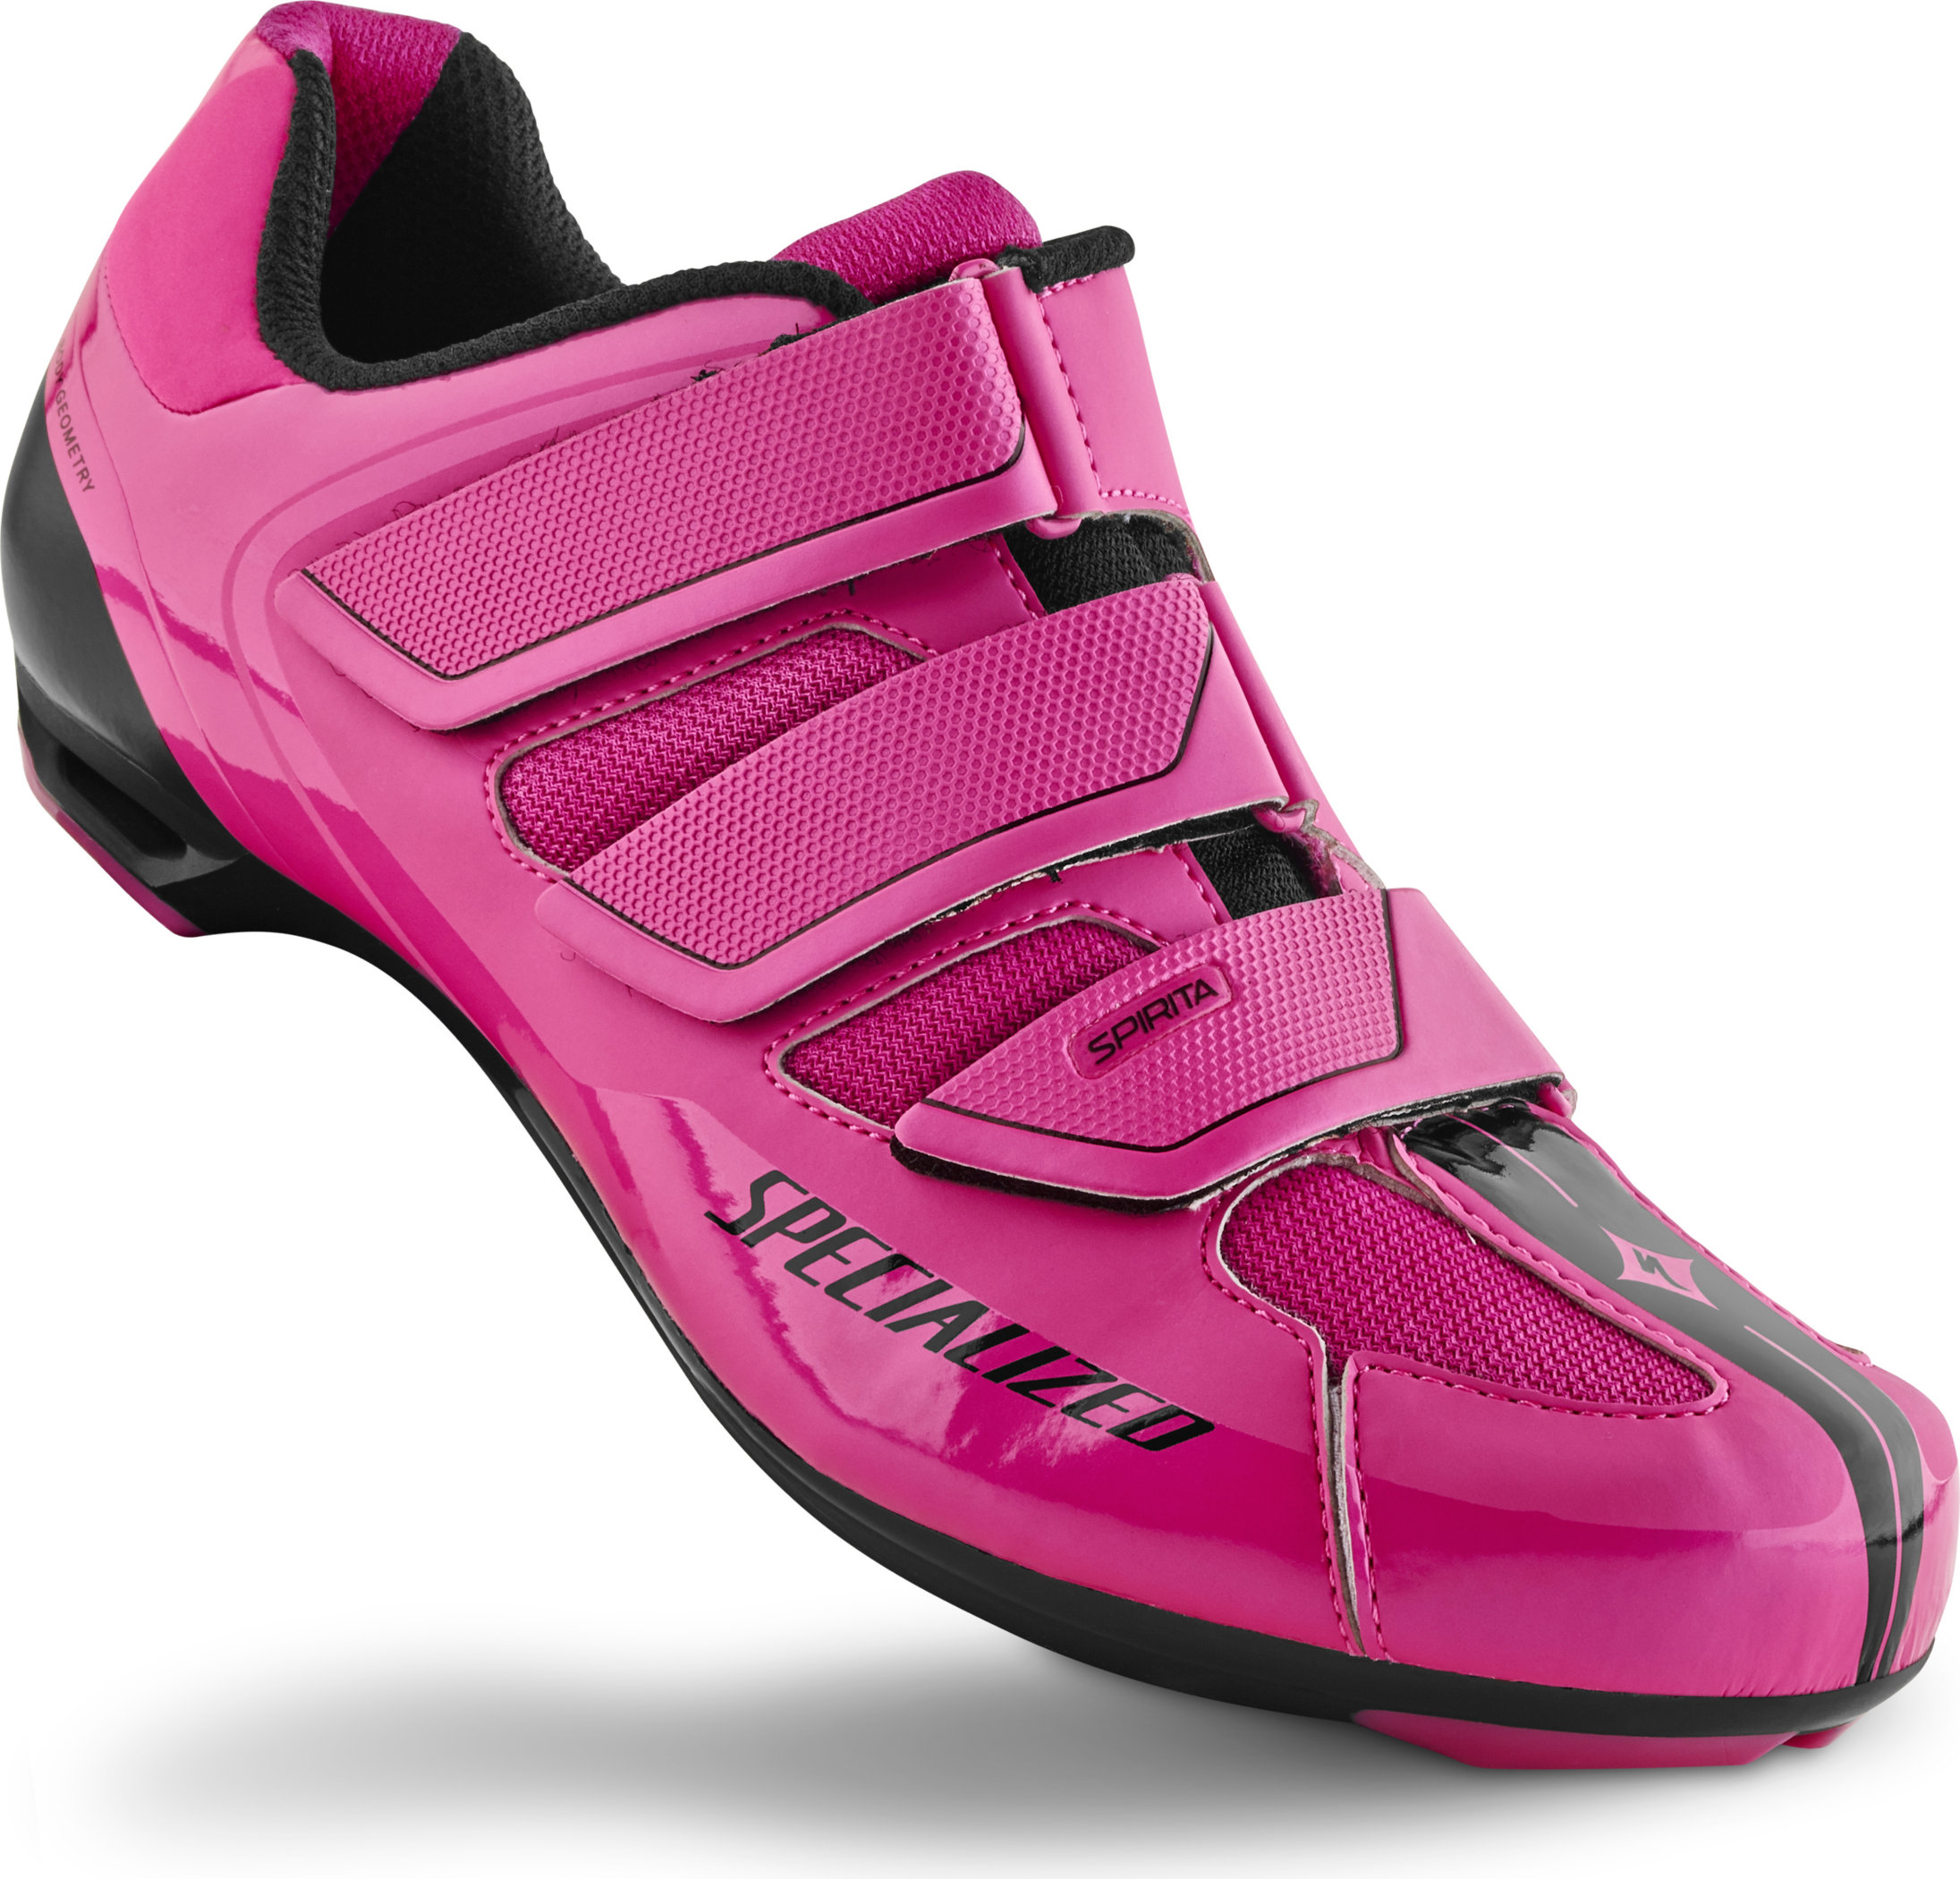 SPECIALIZED SPIRITA RD SHOE WMN PNK 39/8 - Bikedreams & Dustbikes